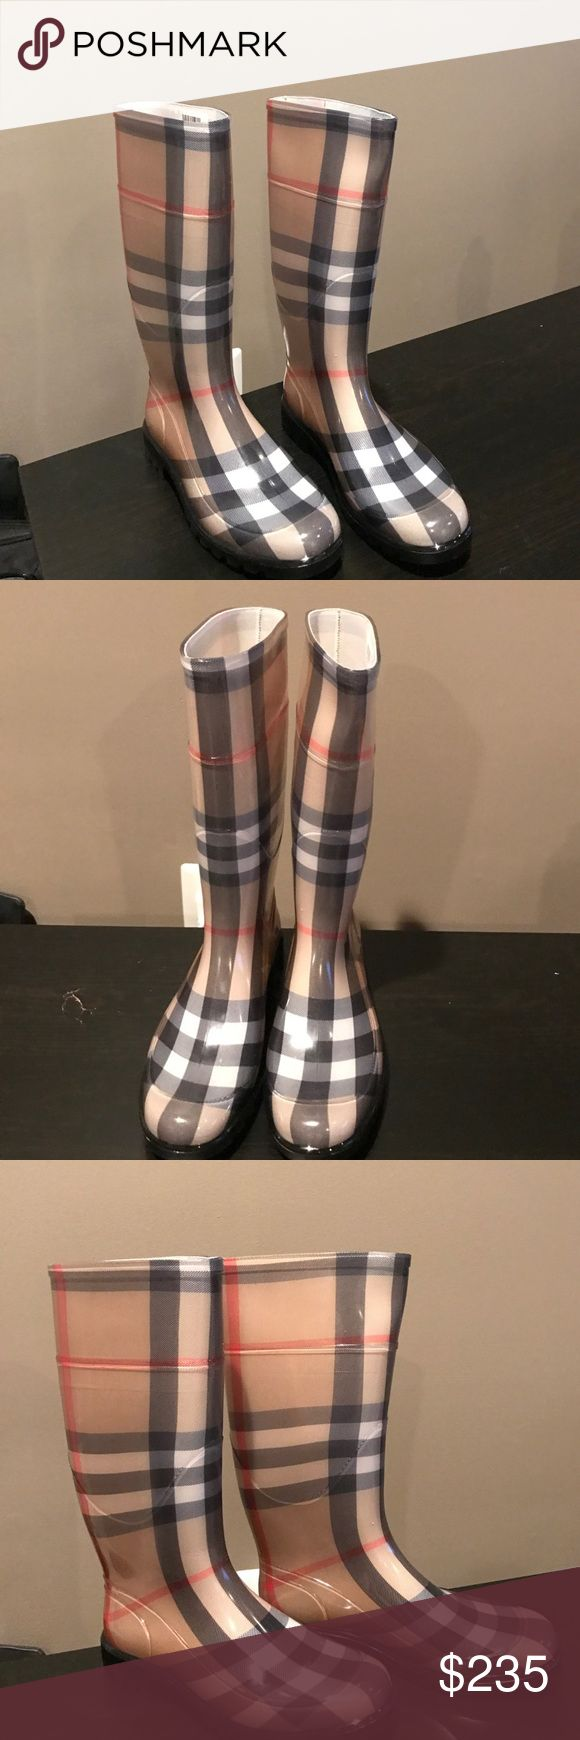 Rain boots Burberry rain boots, brand new. Never worn. Burberry Shoes Winter & Rain Boots